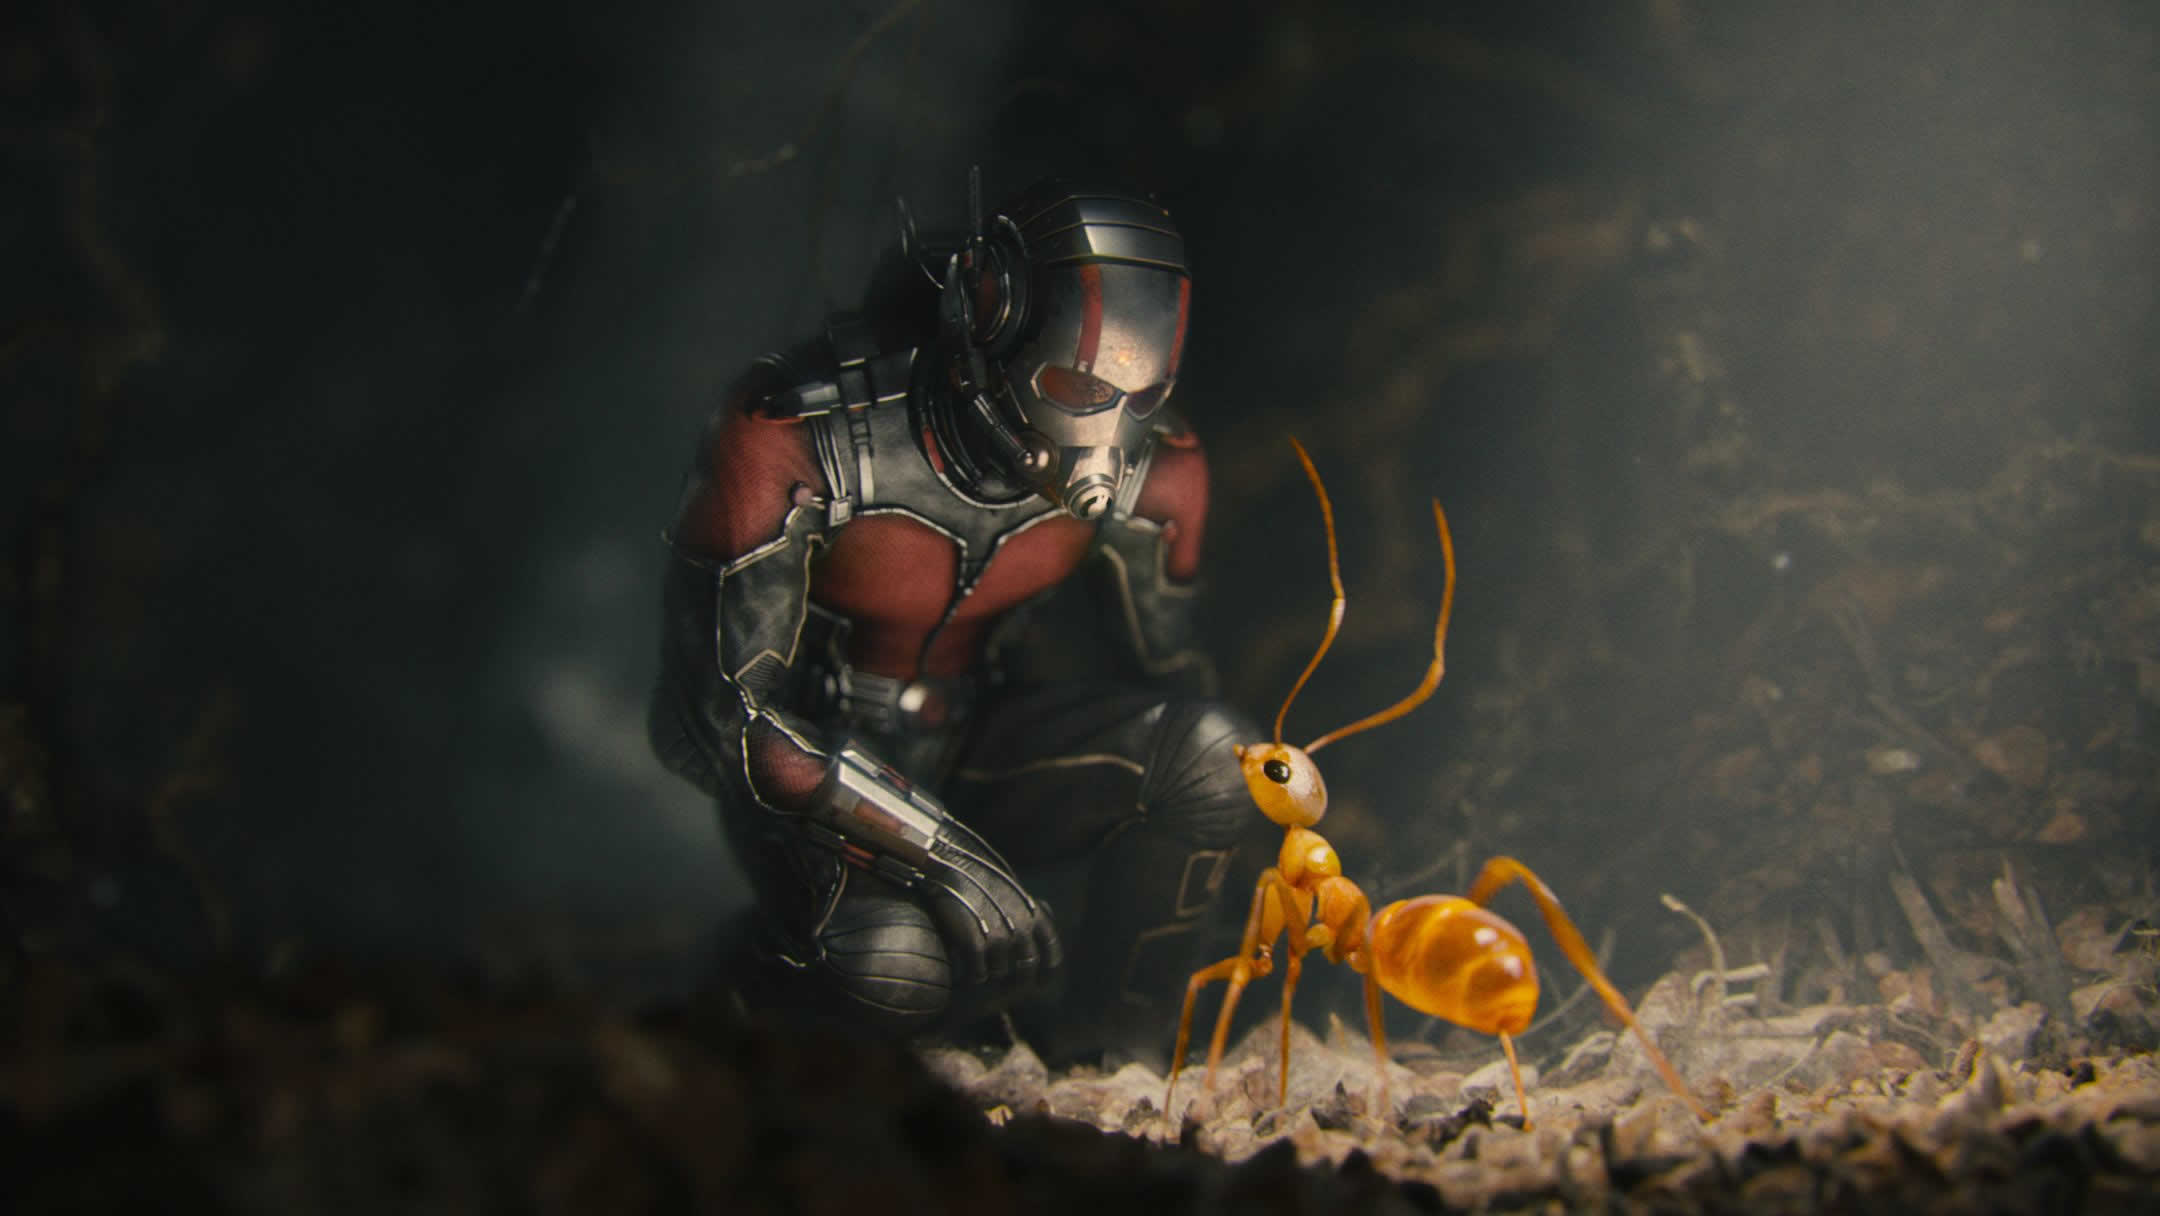 ANTMAN Computer Wallpapers Desktop Backgrounds 2160x1216 ID 2160x1216